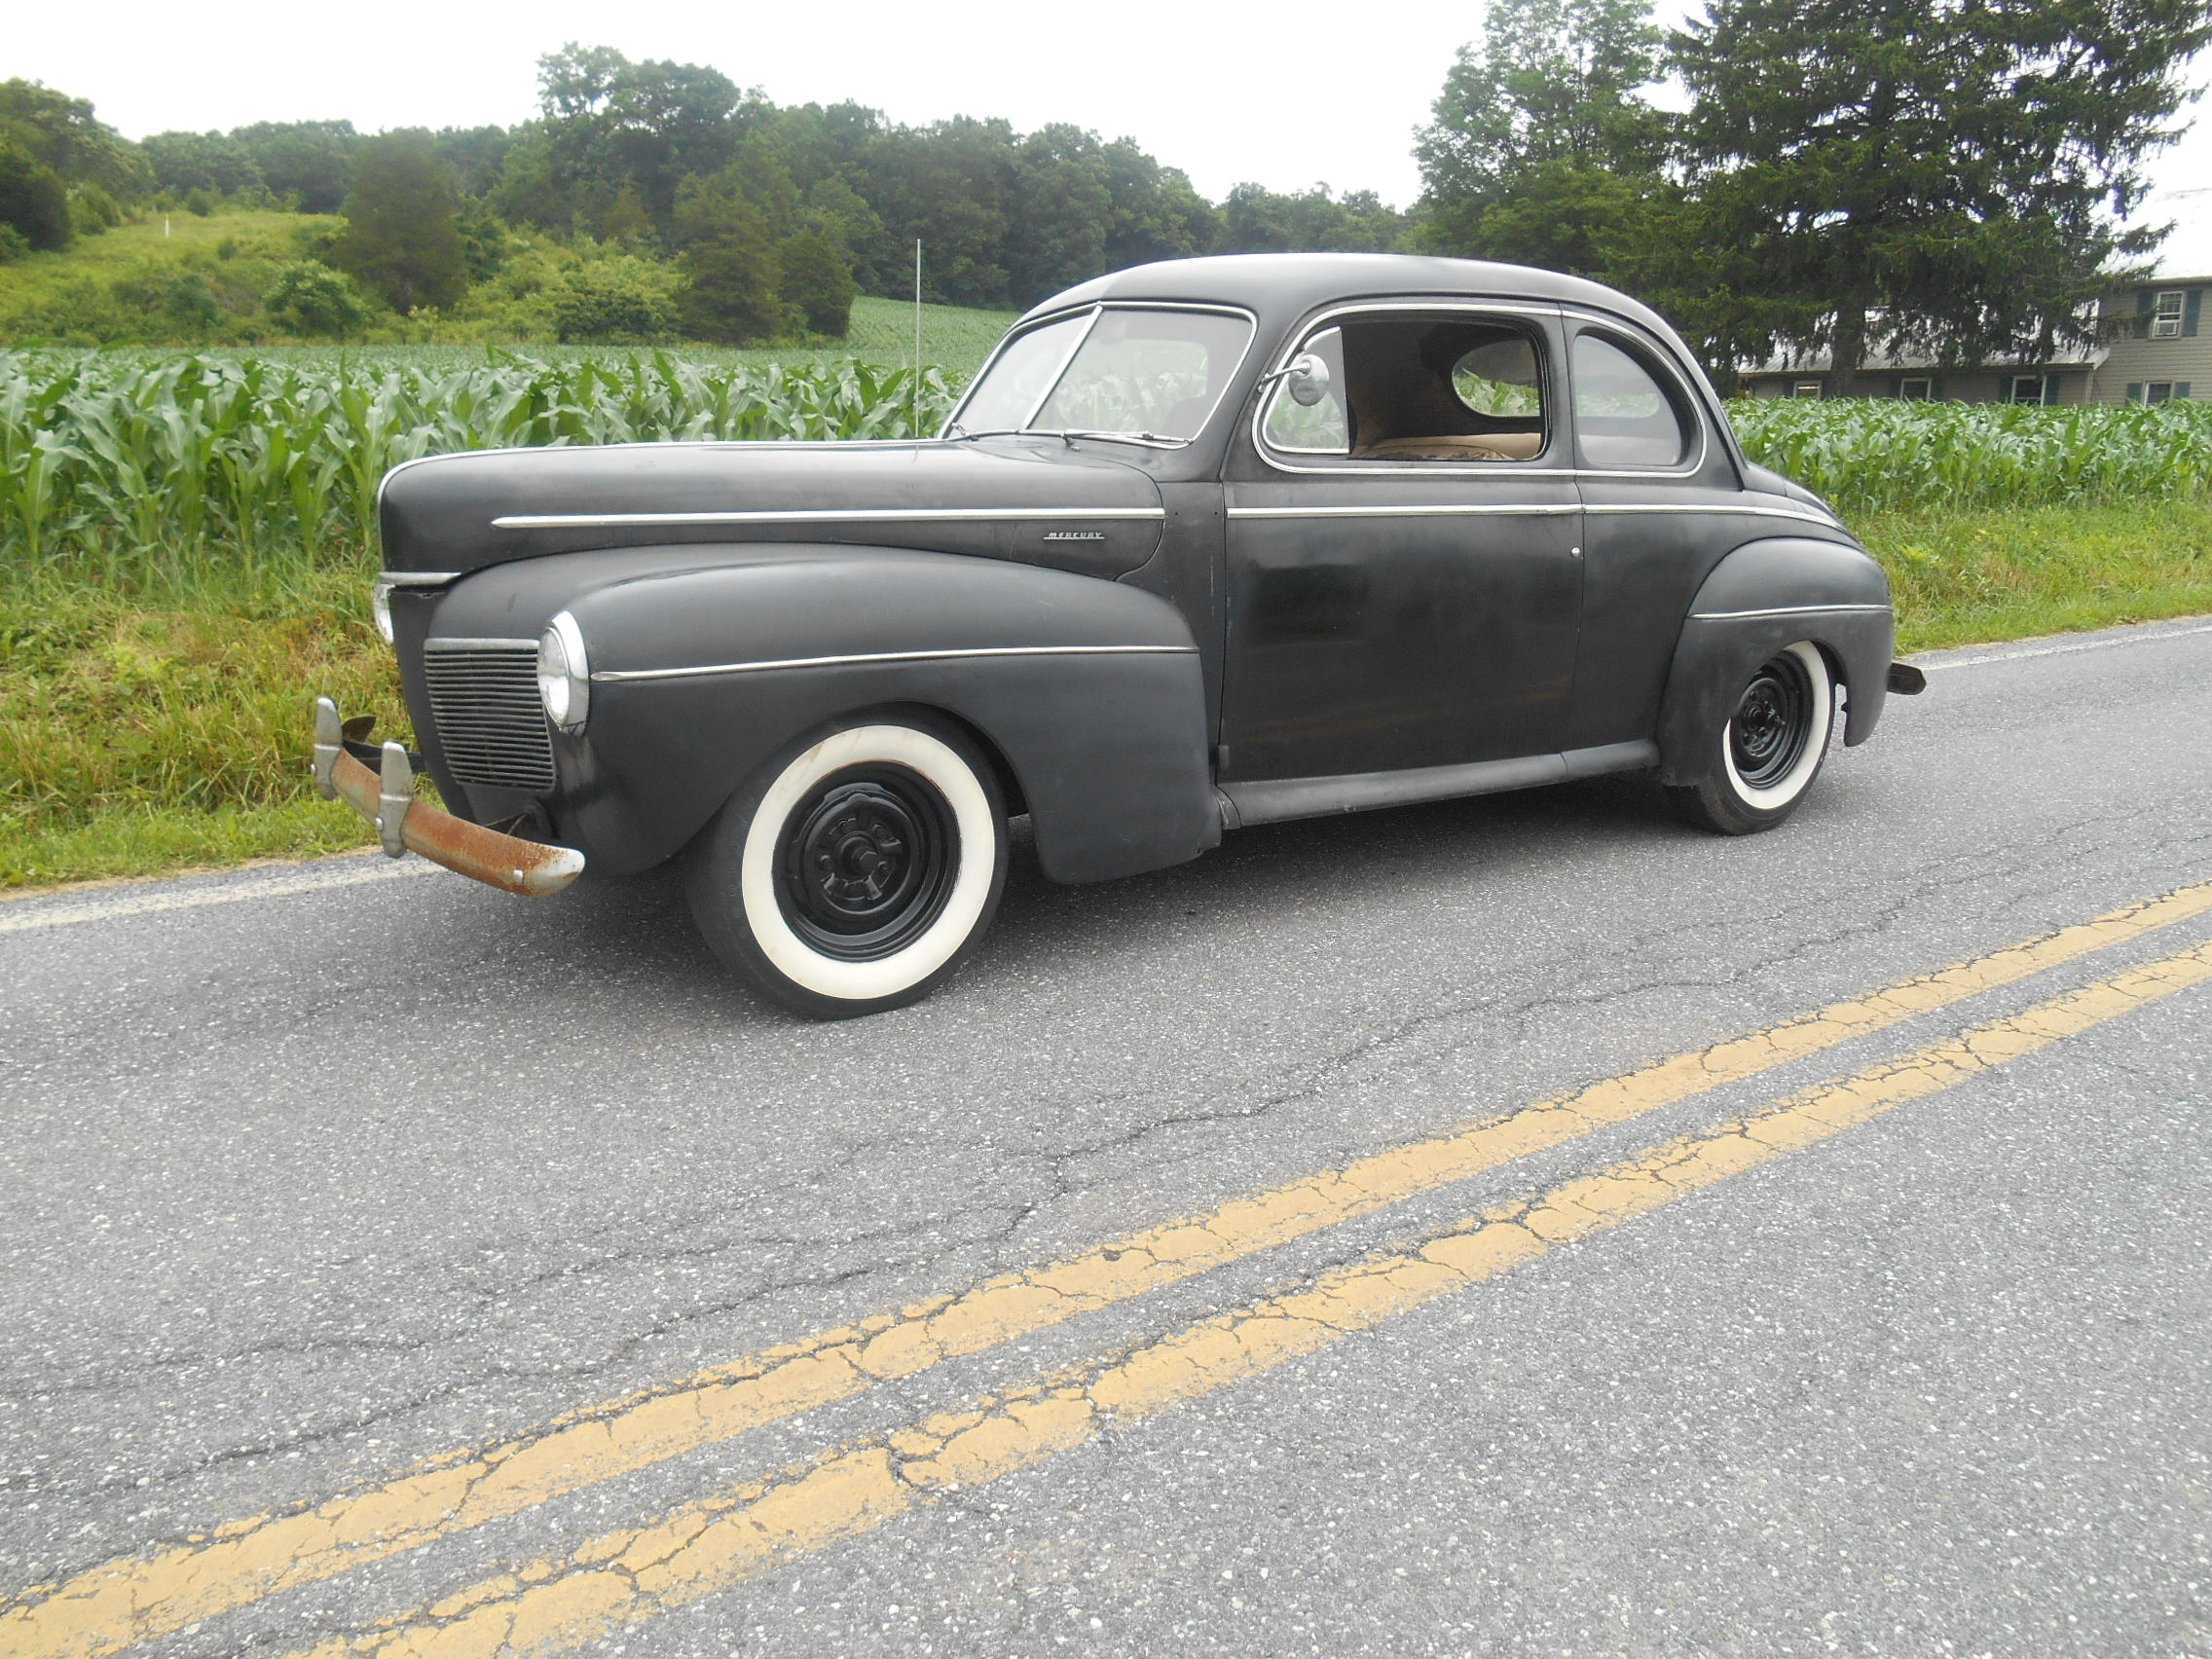 1941 Mercury Cp Old East Coast Hot Rod For Sale Or Trade The Hamb 4 Door Sedan Car 004